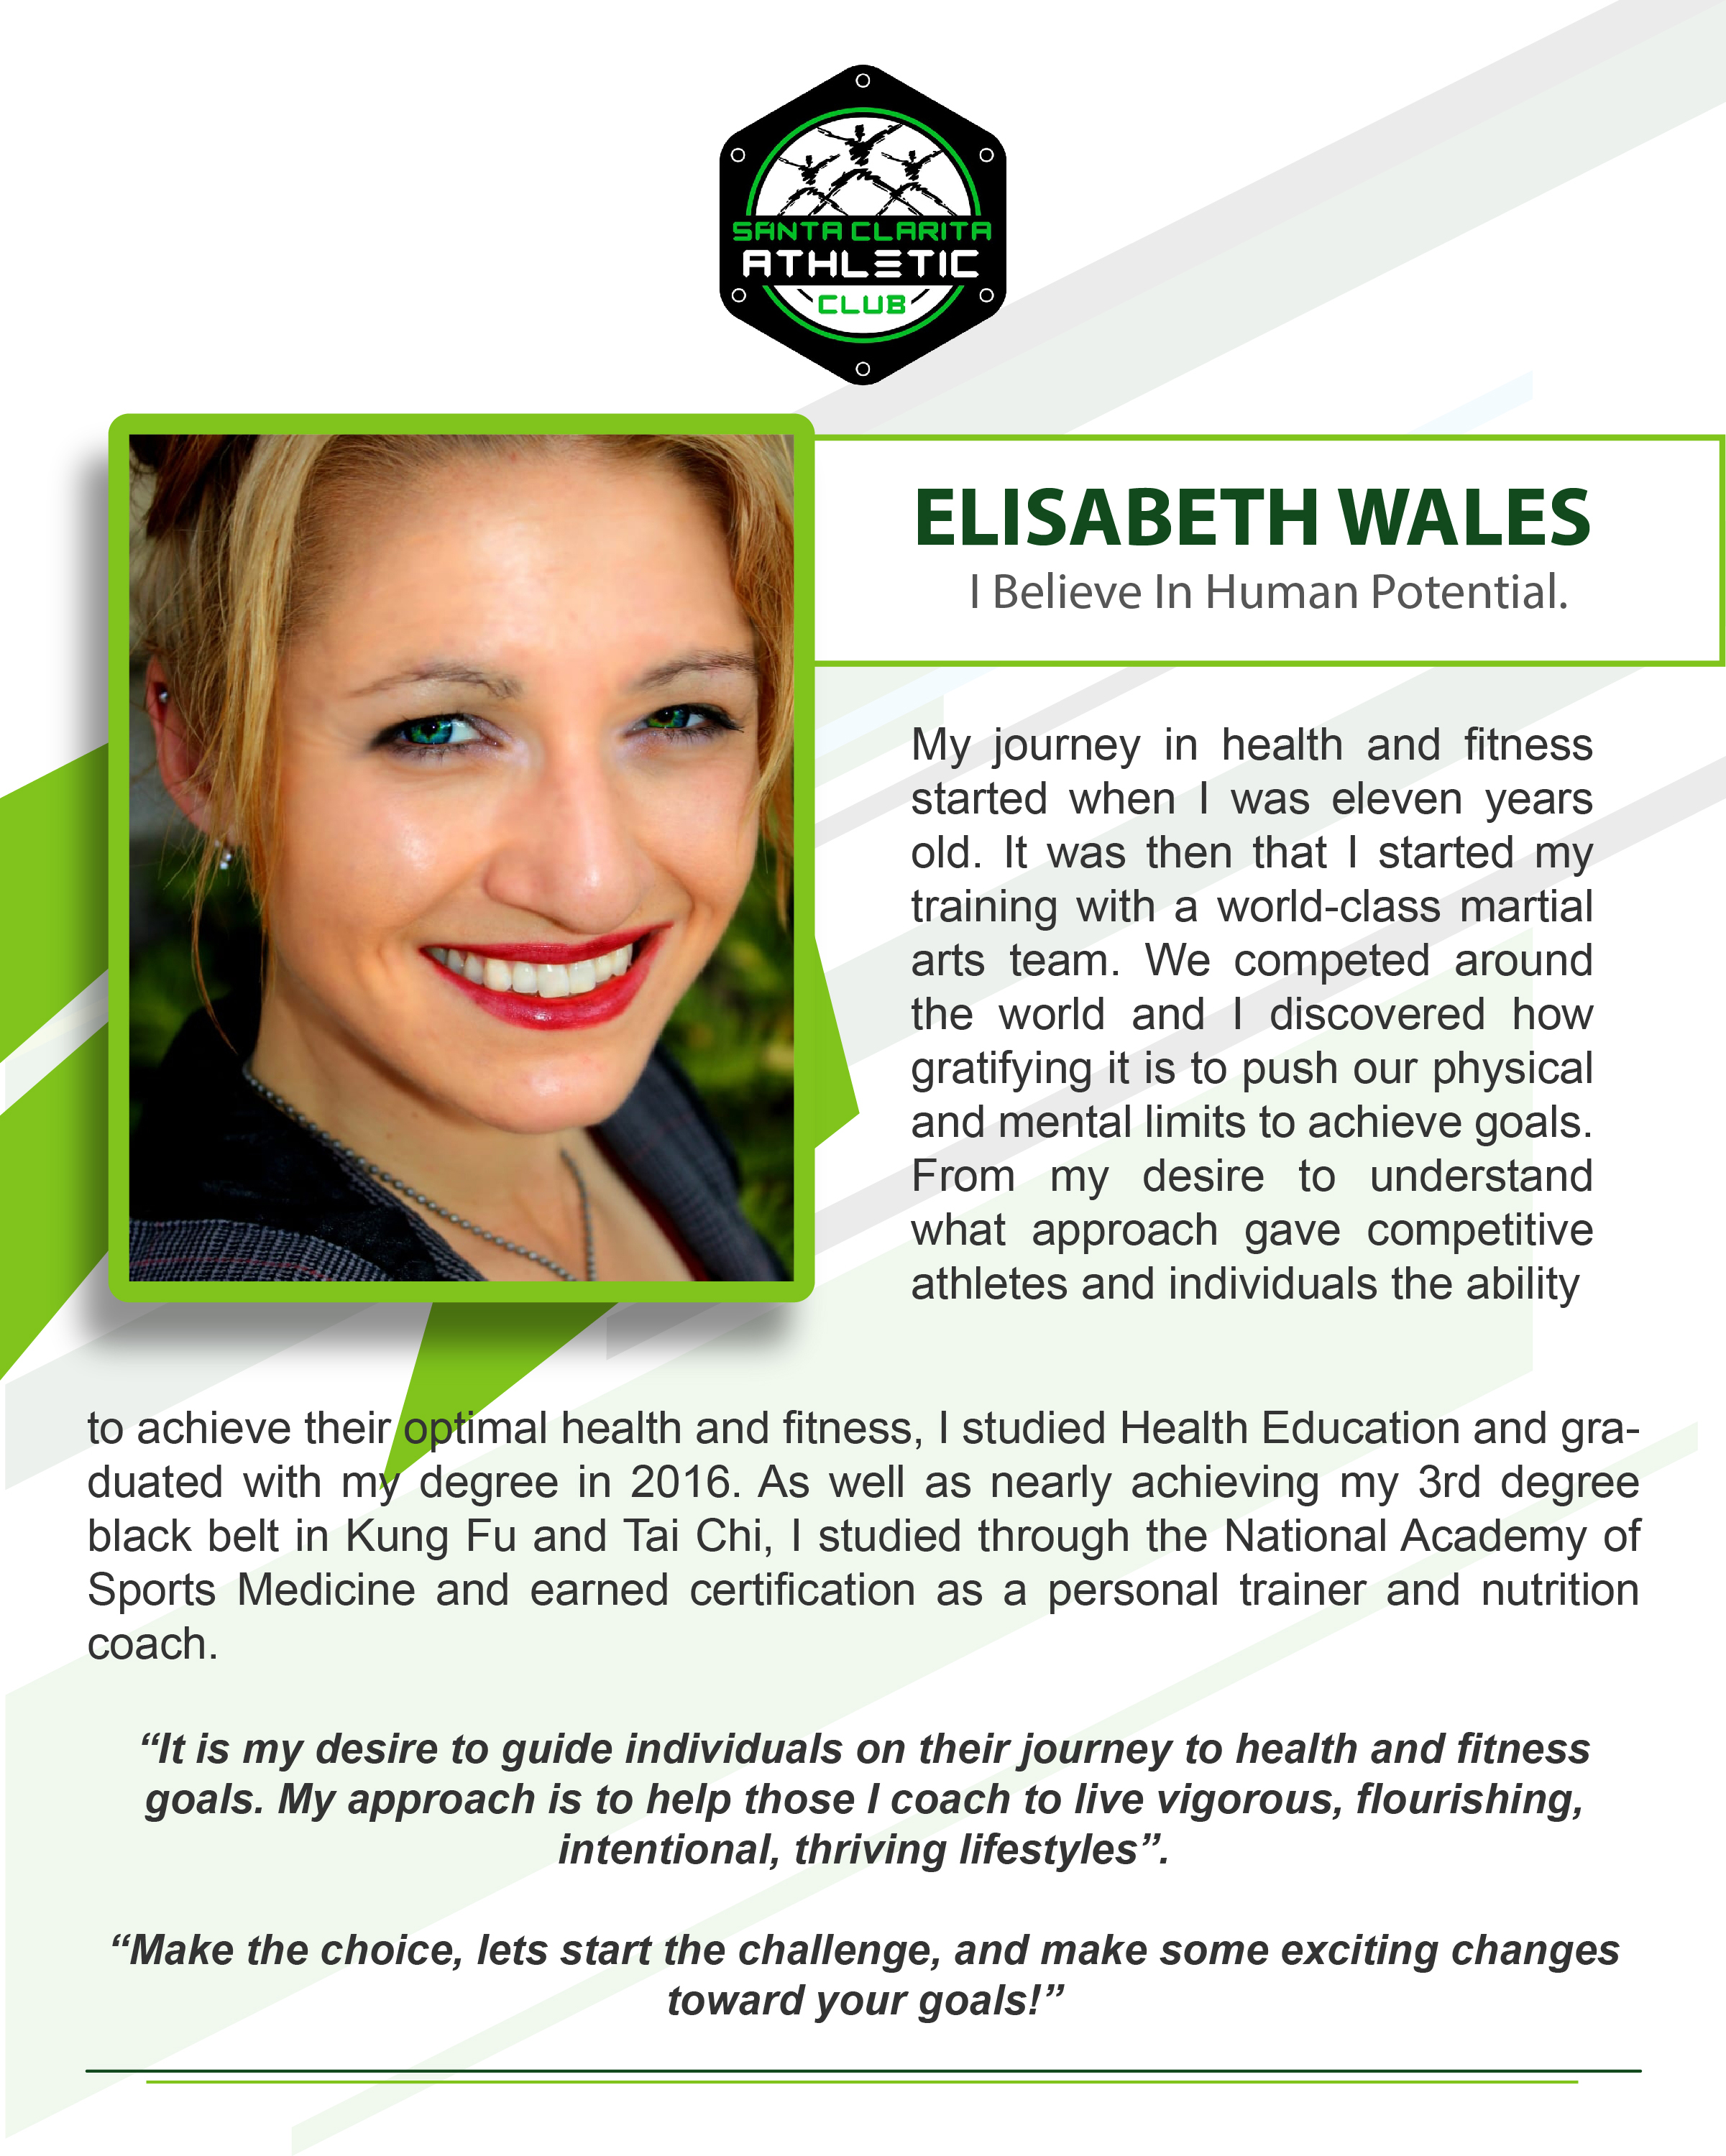 Elisabeth Wales - Certified Personal Trainer